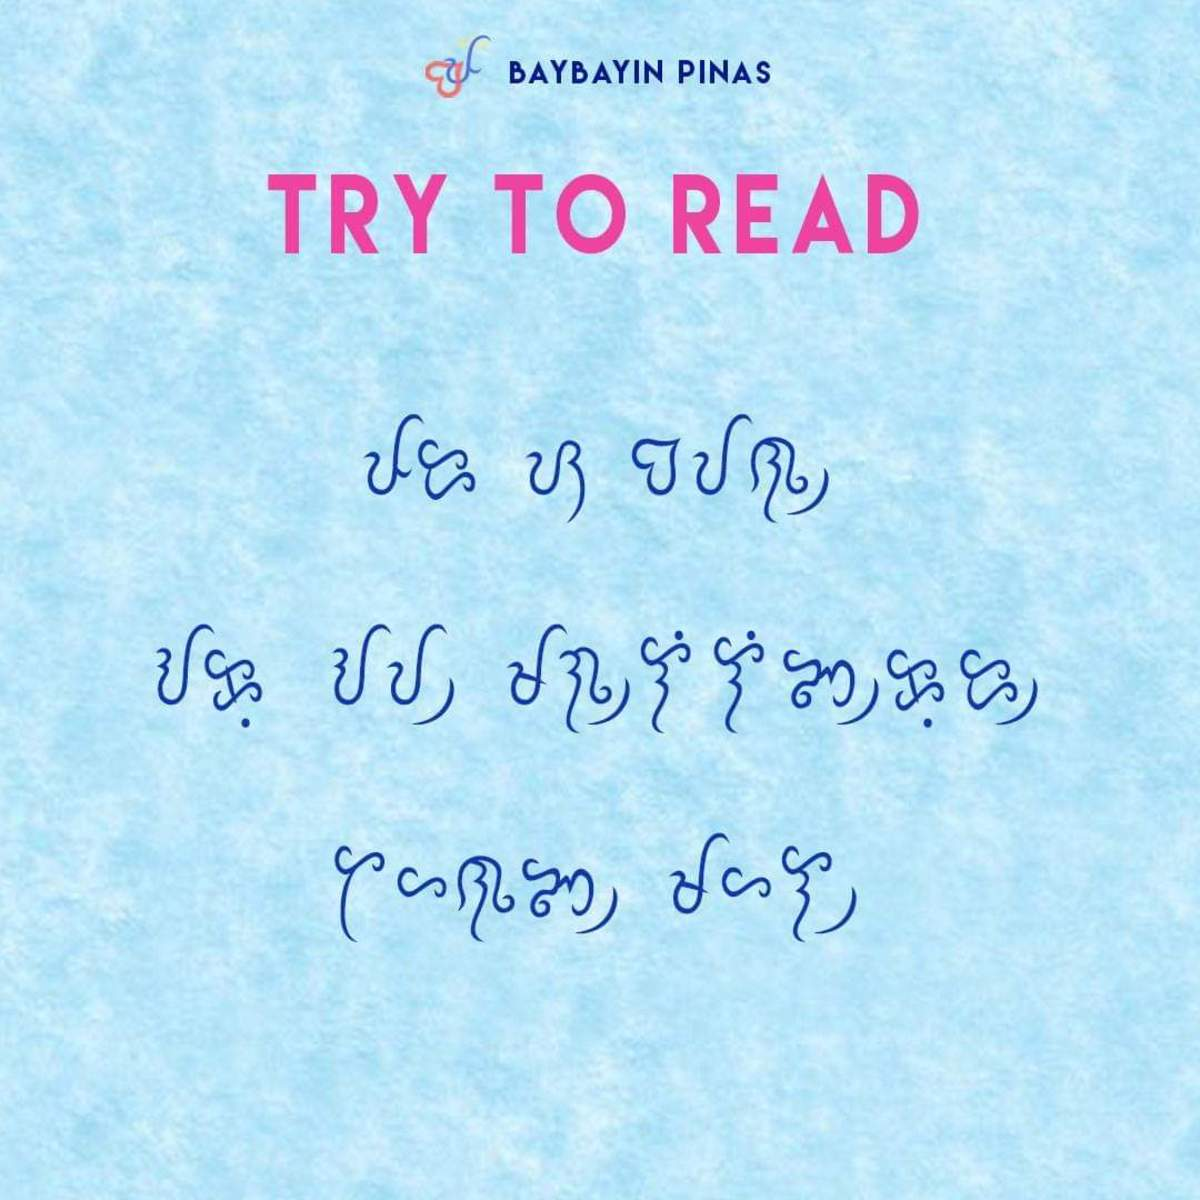 Try to read the following Baybayin characters.